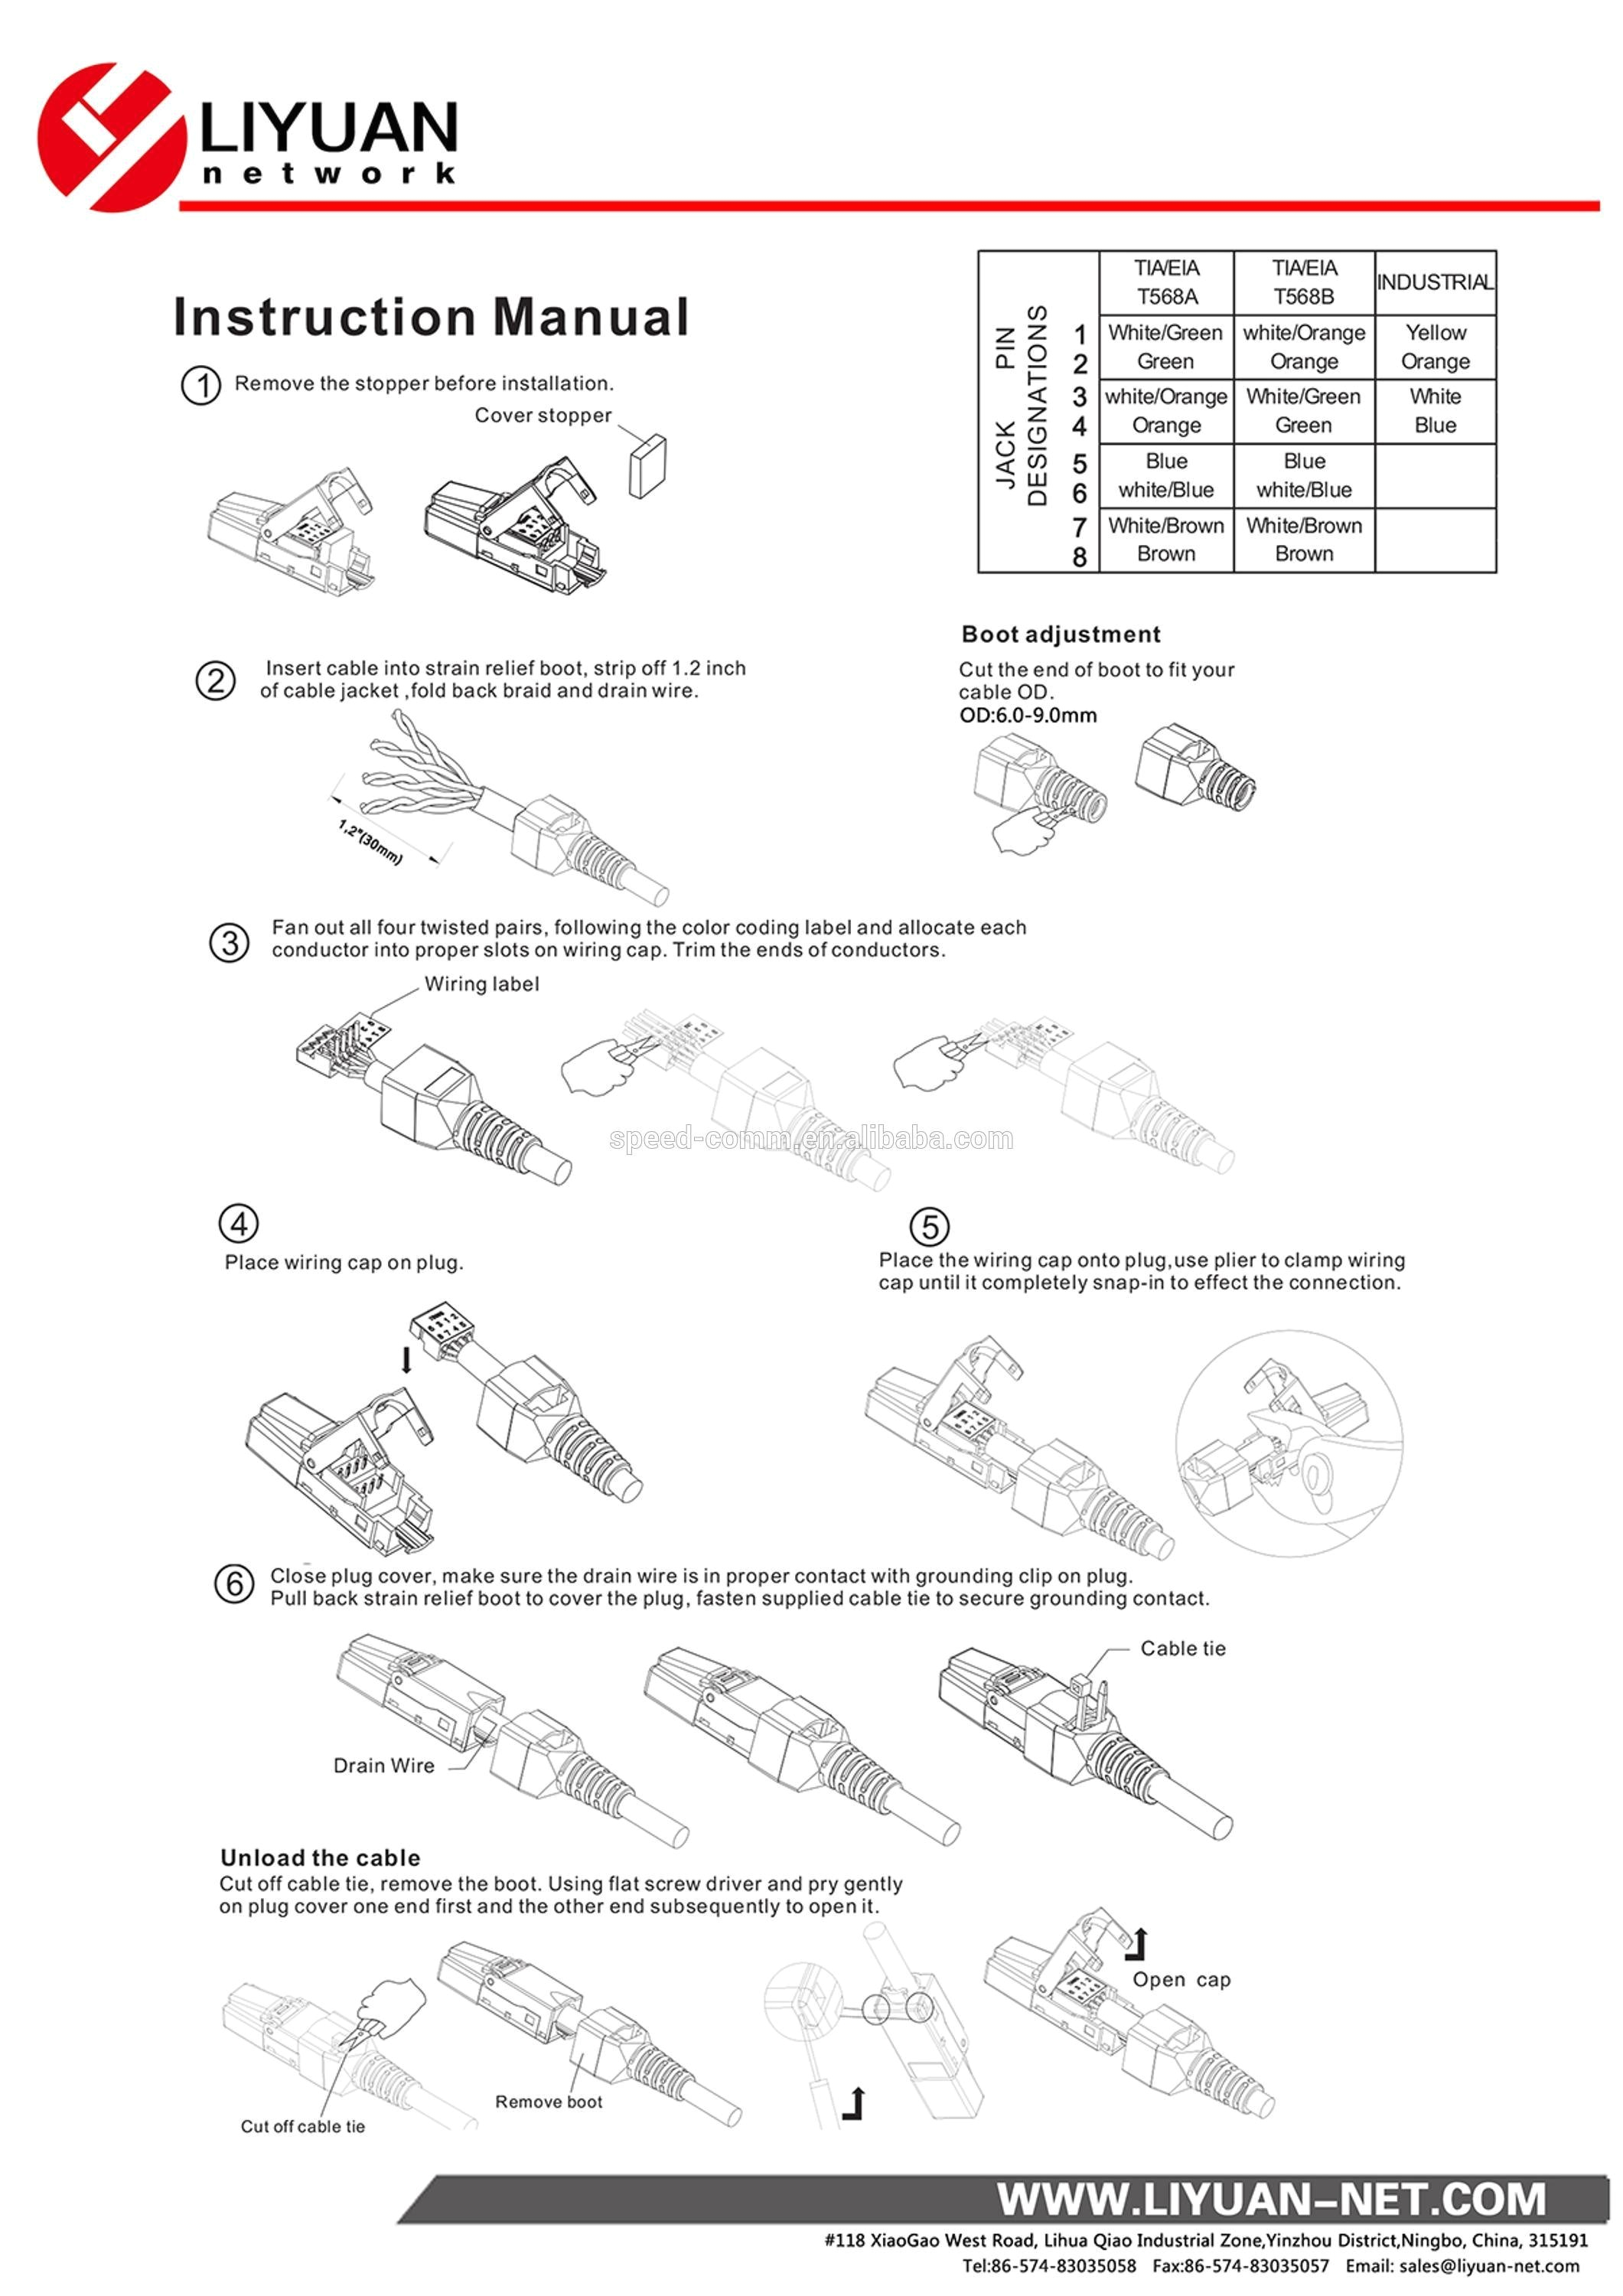 Cat 6 Wiring Diagram 568b Cat6 Ethernet Cable Wiring Diagram Wiring Diagram Database